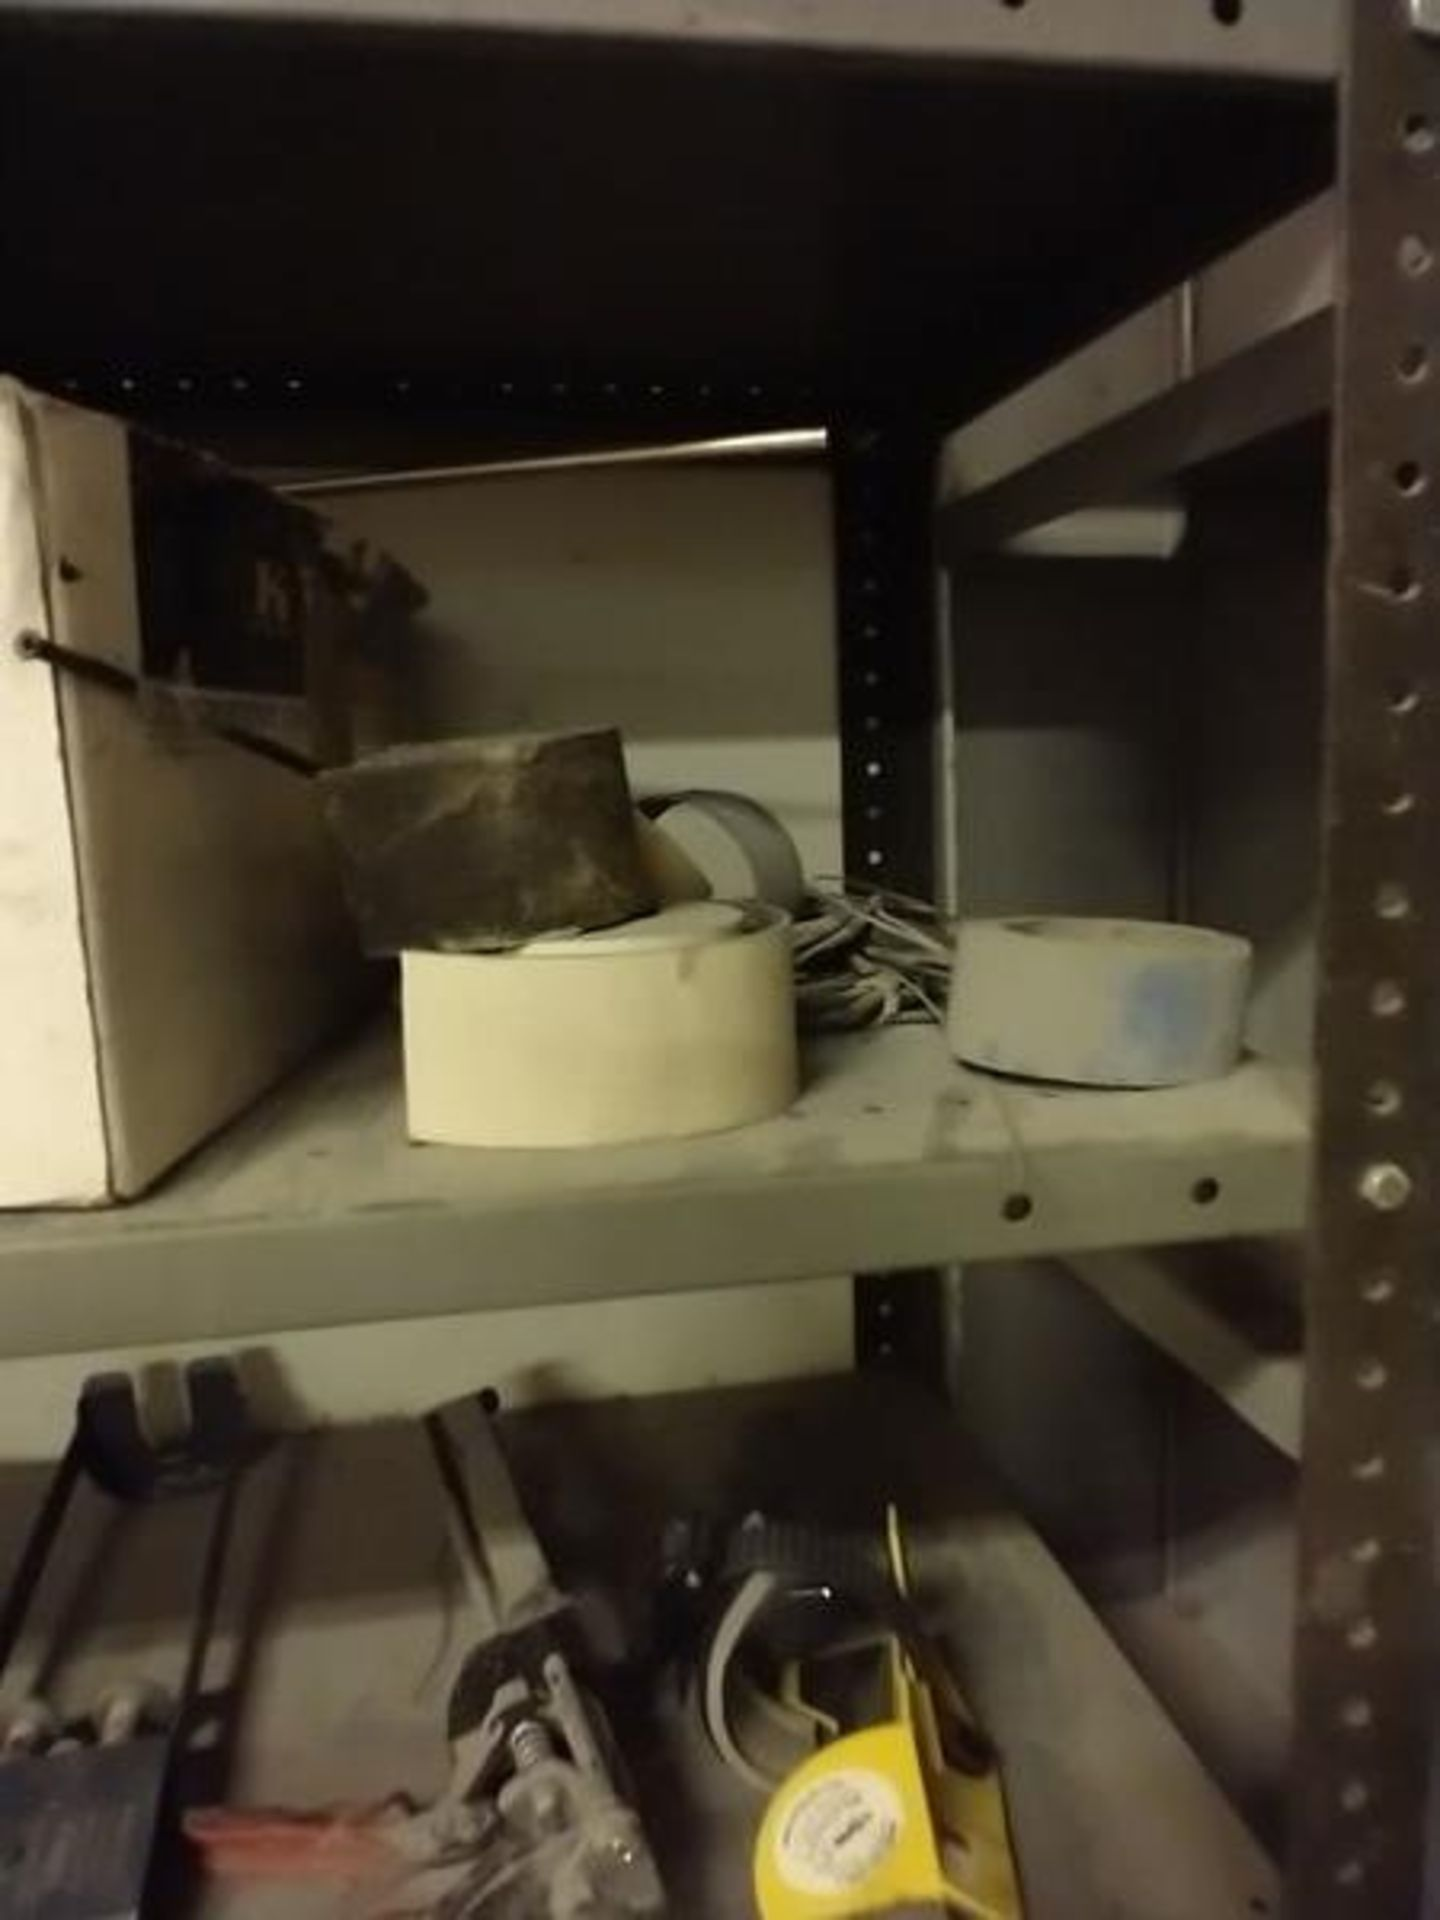 LOT OF PARTS, SEALS, TAPE AND MISC ON SHELF - Image 4 of 4